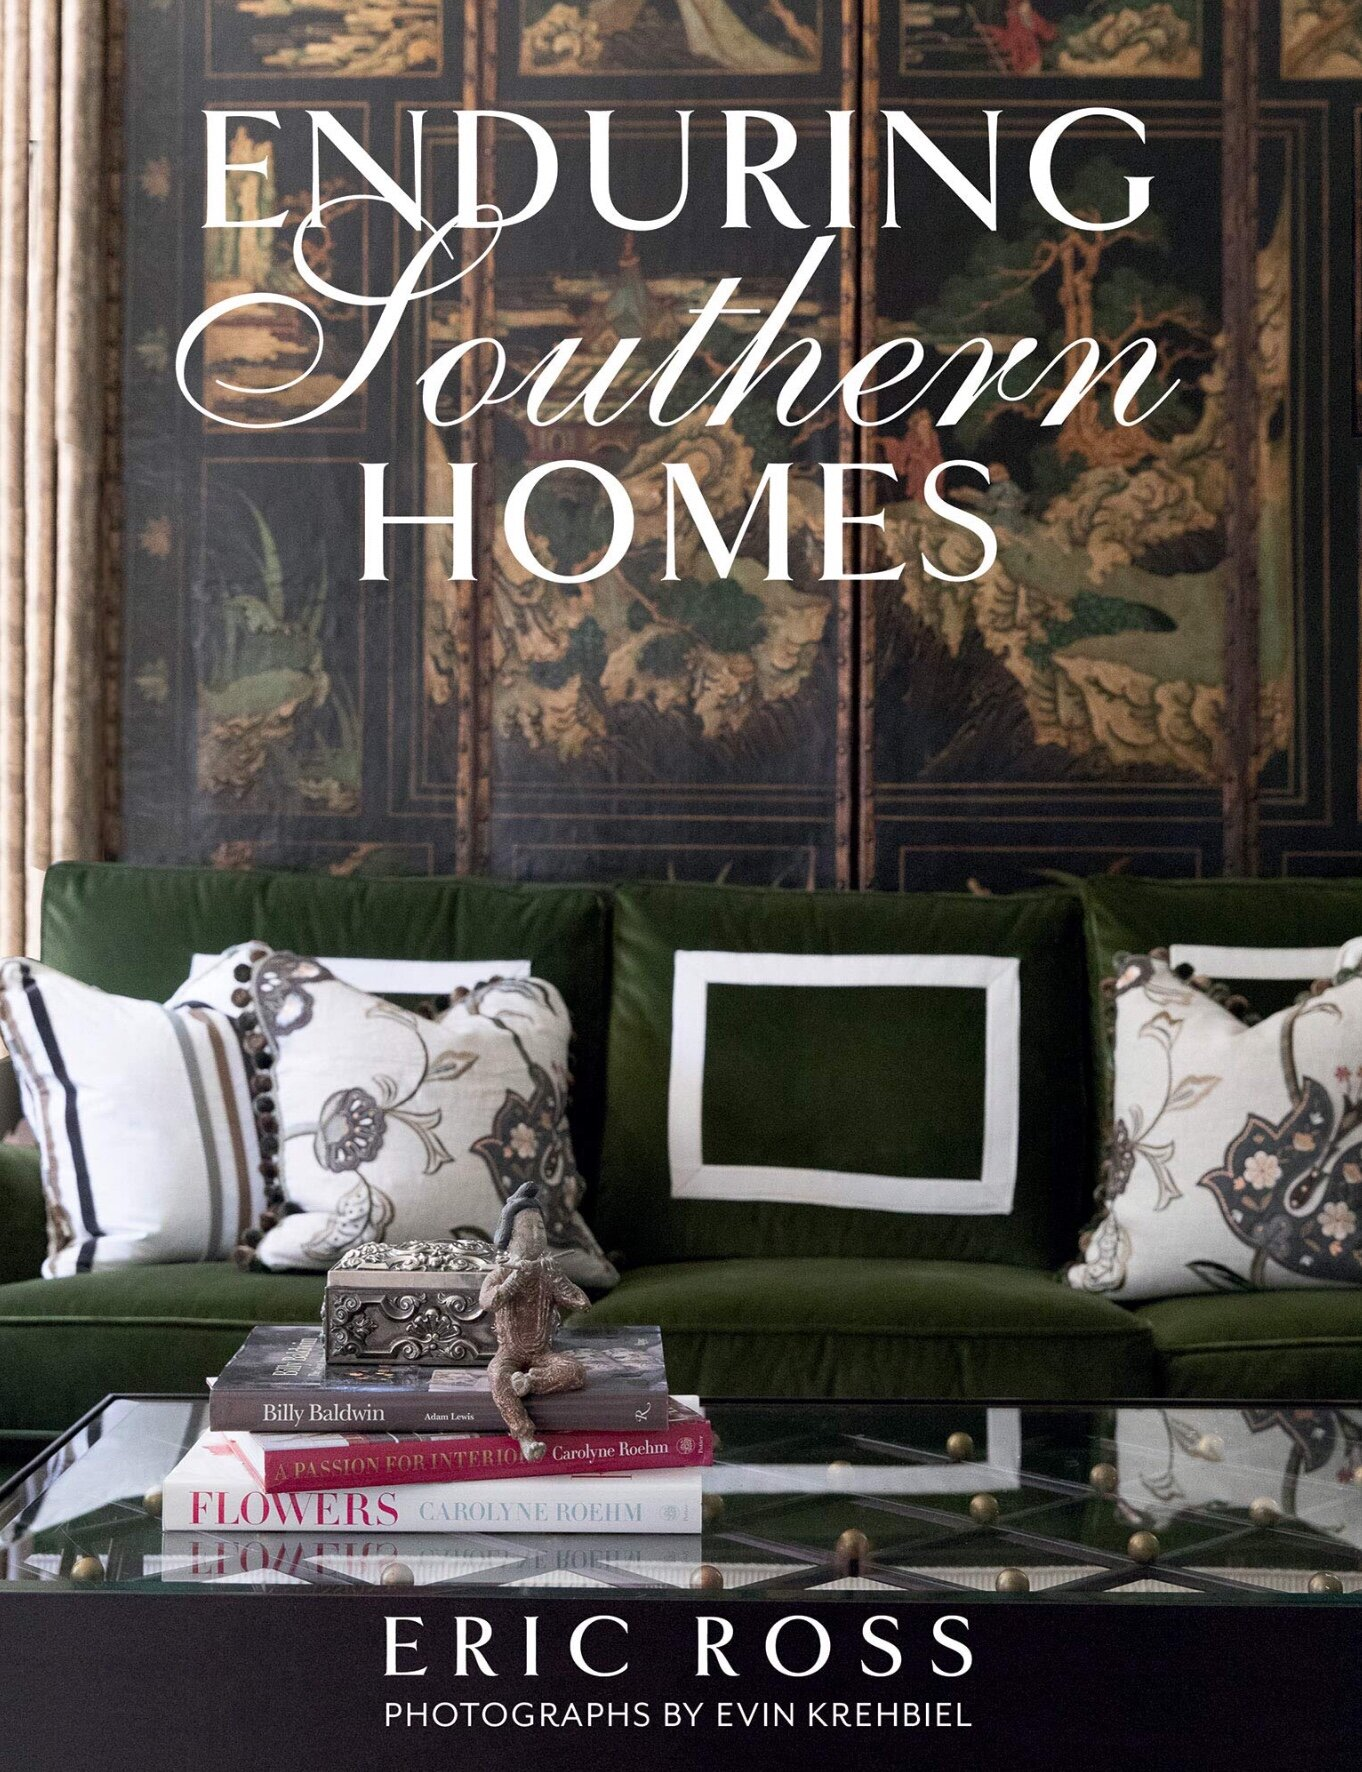 Eric Ross is known for his trademark fresh take on traditional Southern style. His Southern approach to traditional interiors combines little bit of French country and Southern hospitality. Book showcases some of his most beautiful projects along with simple advice on how to create your very own enduring home .